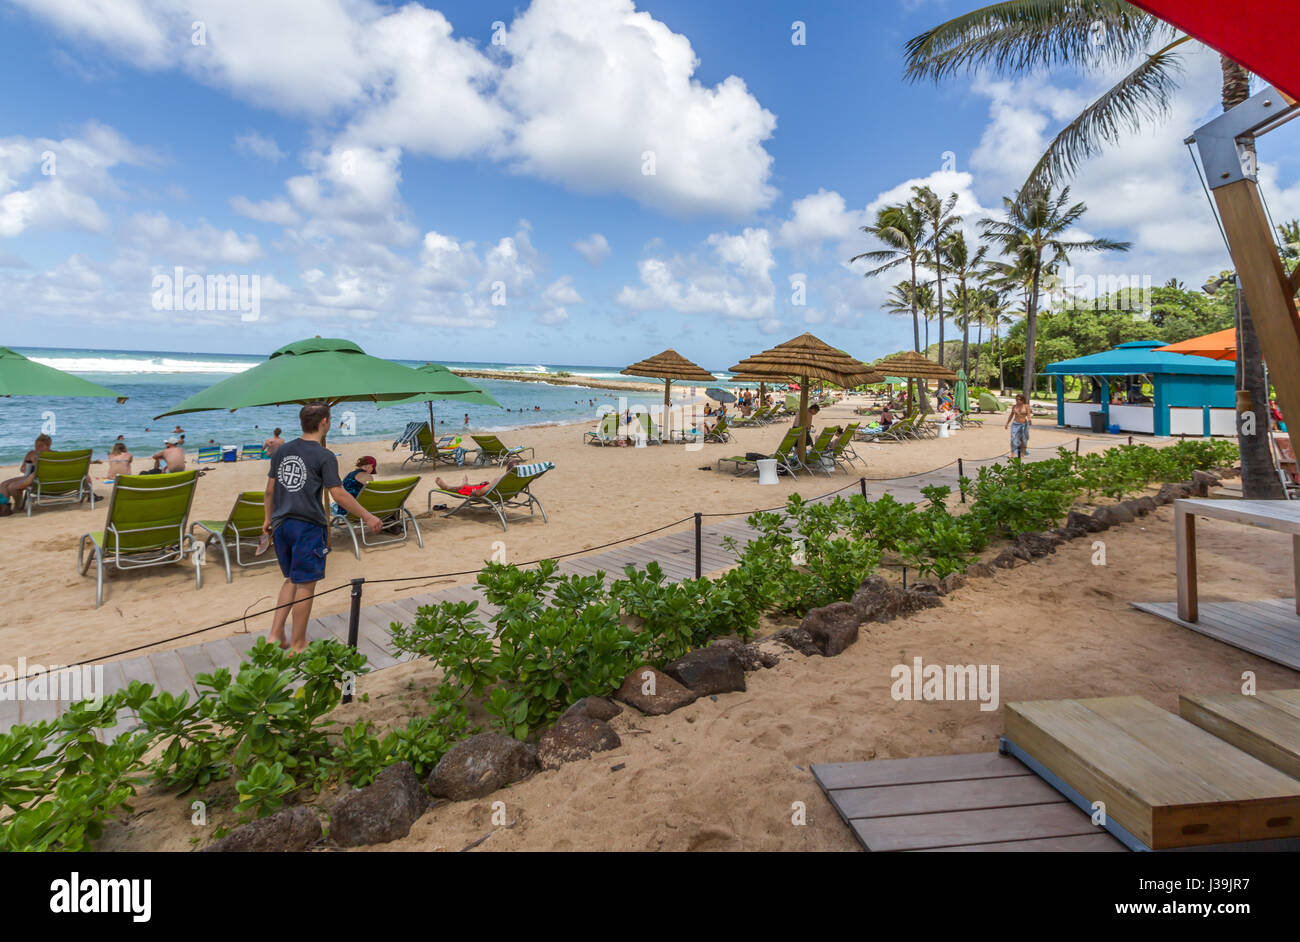 Oct 26 2016, Kahuku Hawaii.Tourists enjoying the Beach at the Turtle Bay Resort on the Island Of Oahu on its north - Stock Image